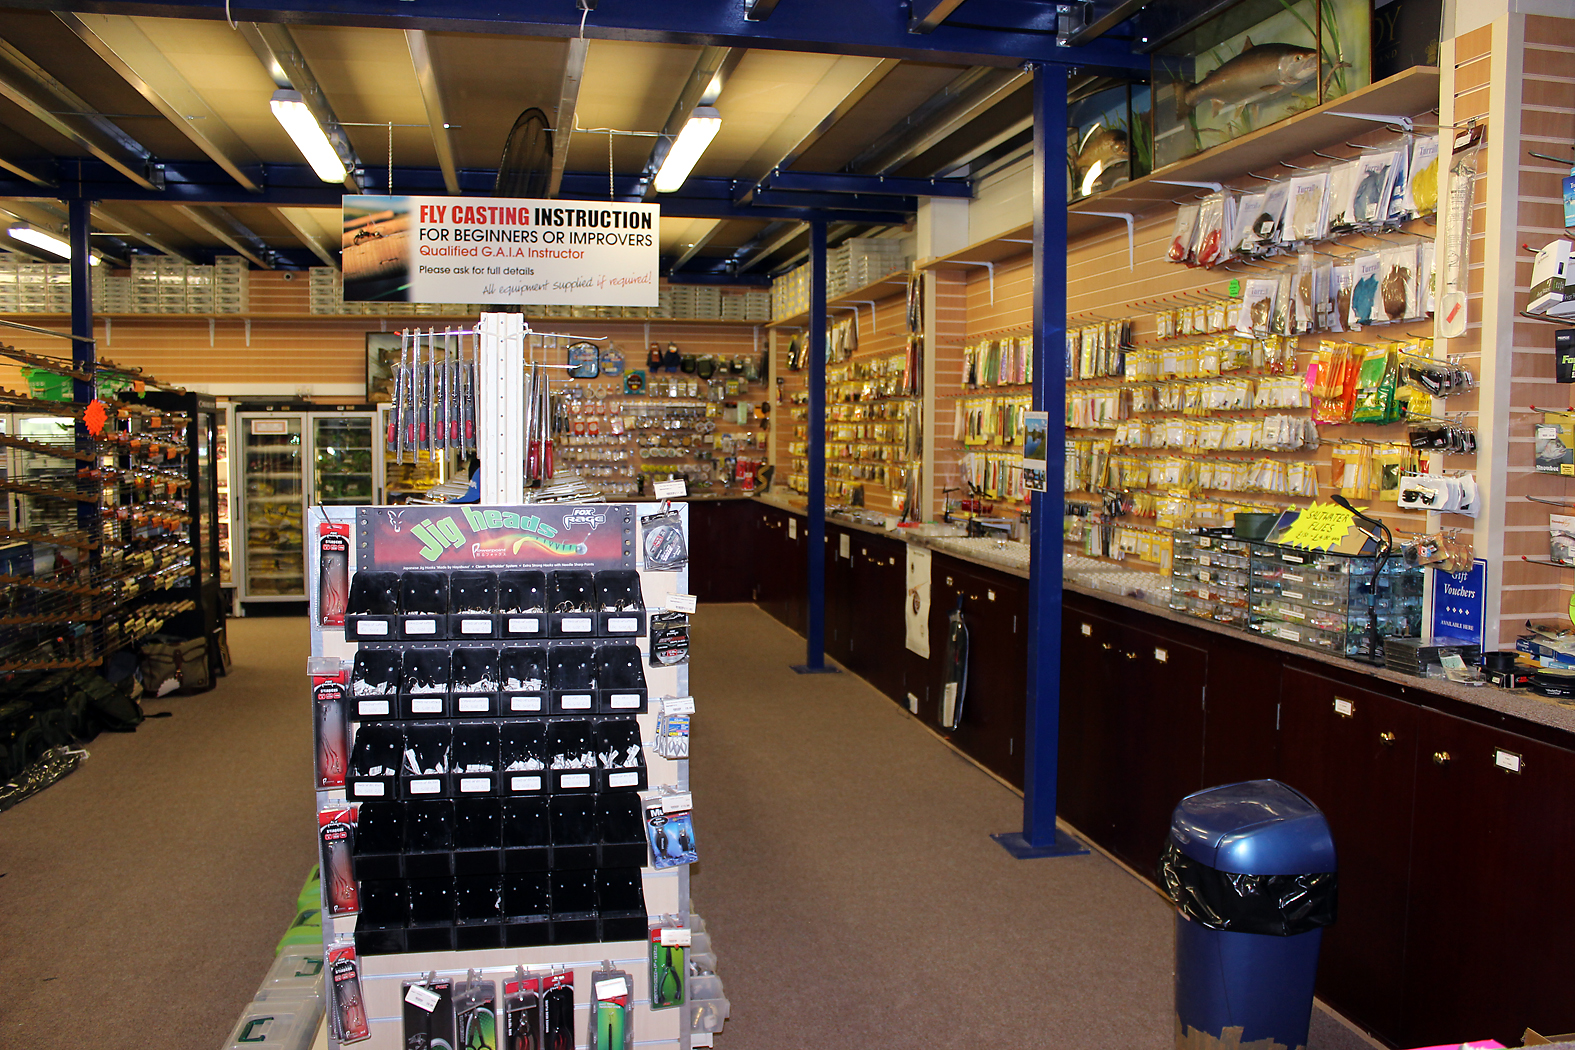 or even fly fishing tackle...